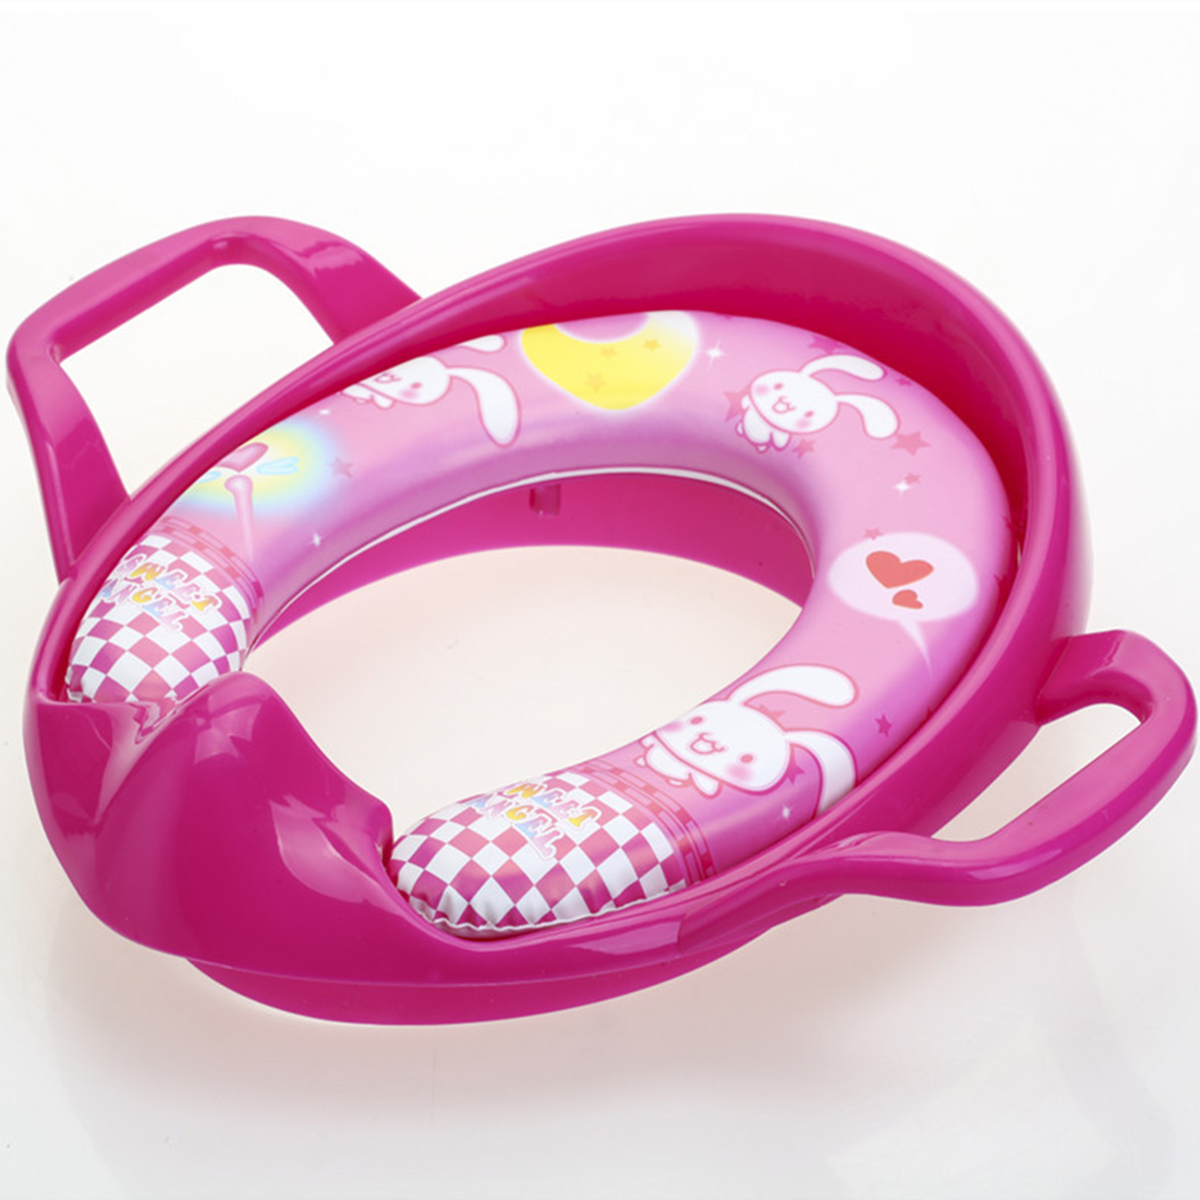 Children's Toilet Seat Soft Cushion Child Toddler Kids Safety Soft Toilet Training Trainer Potty Seat Handles